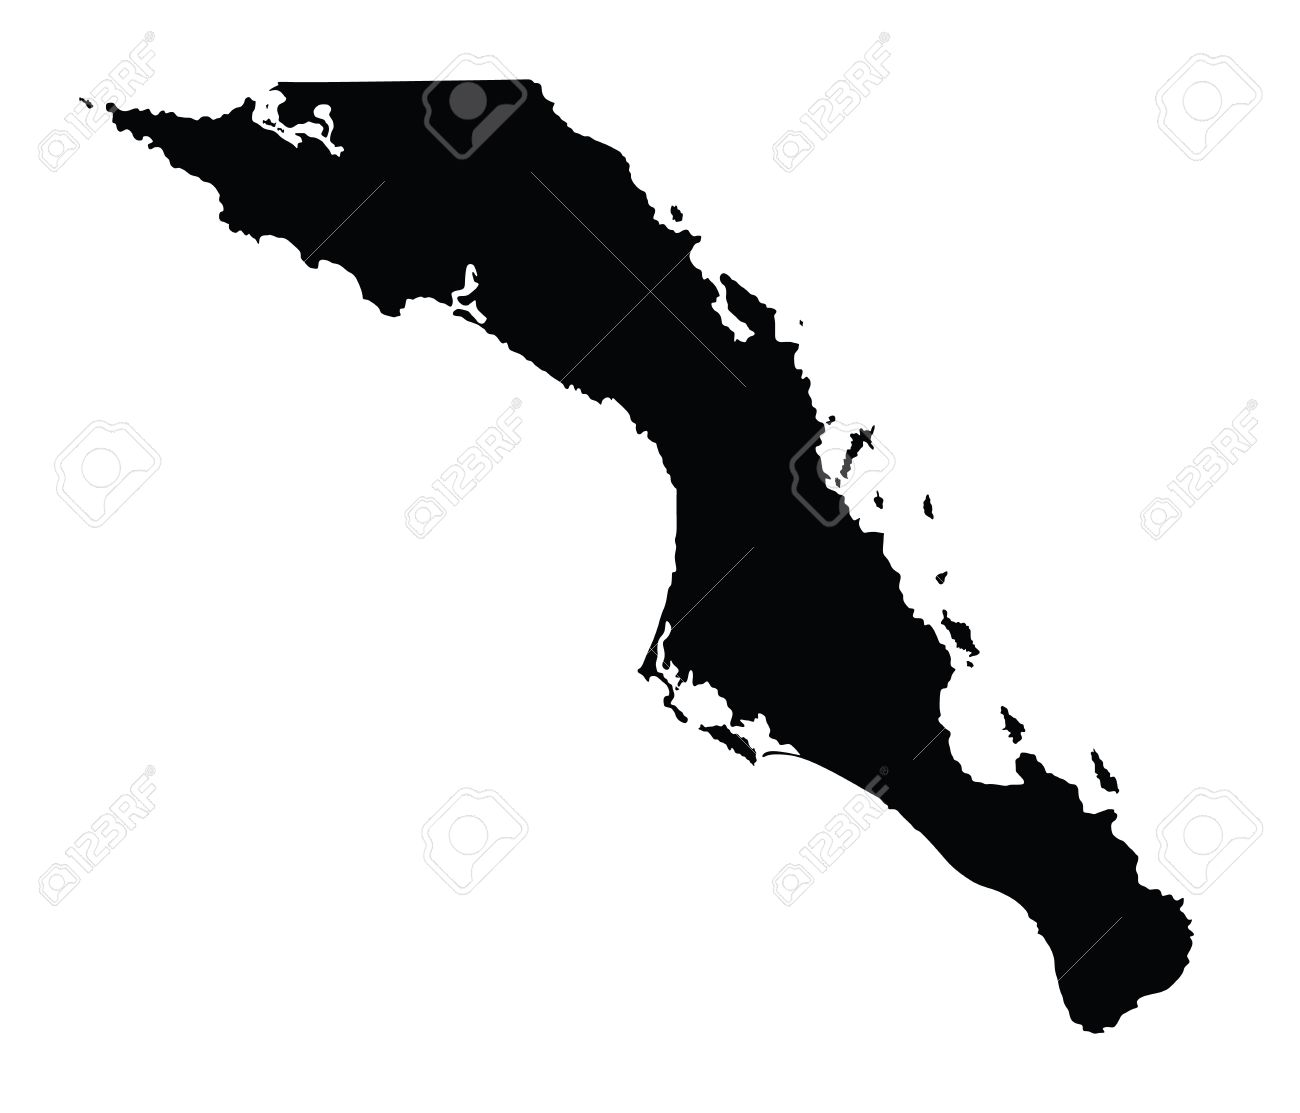 Baja california sur mexico vector map isolated on white background baja california sur mexico vector map isolated on white background high detailed silhouette publicscrutiny Choice Image